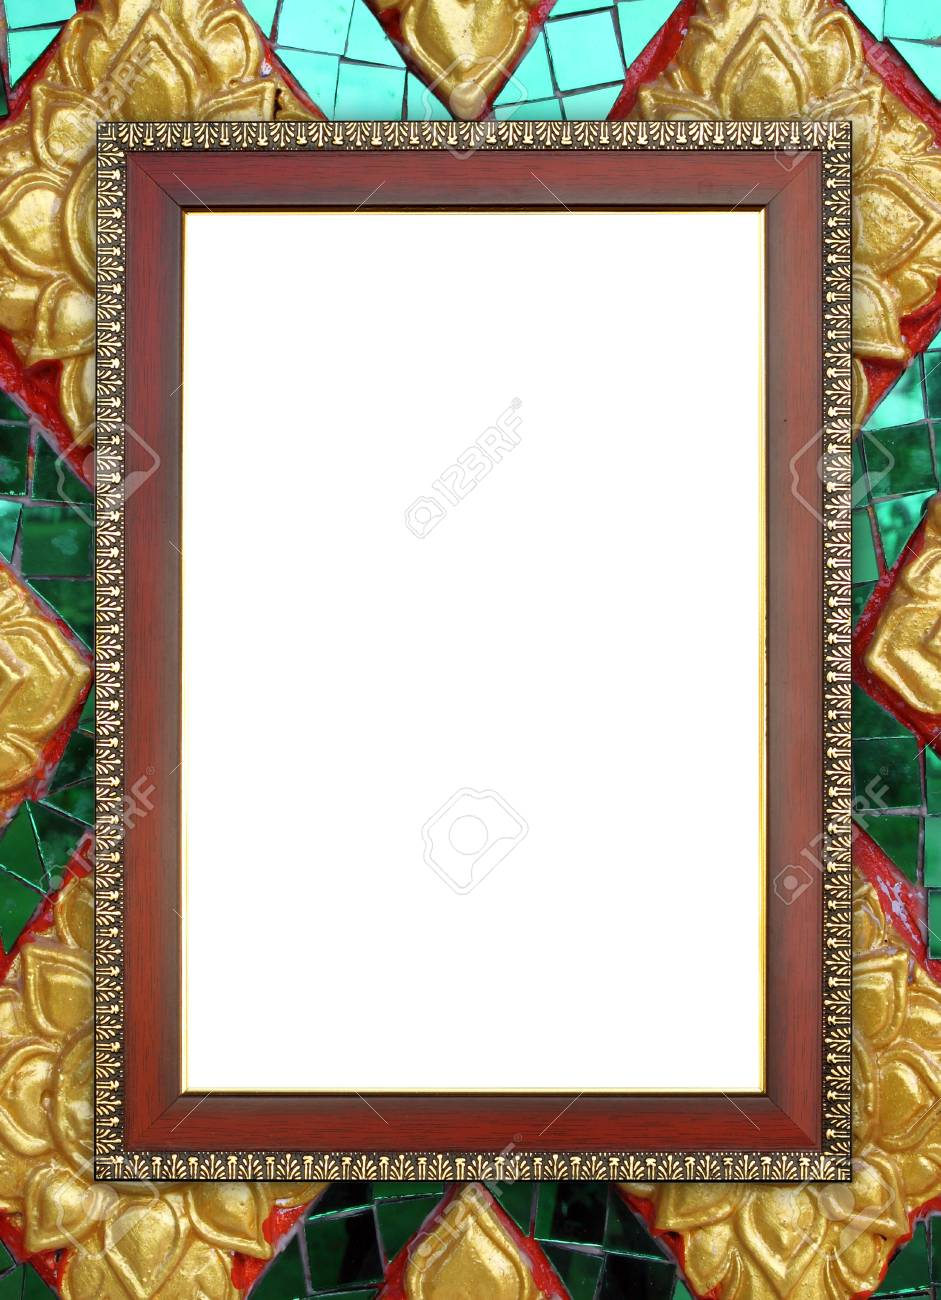 Blank Wood Frame On Buddha Wall Background Stock Photo, Picture And ...